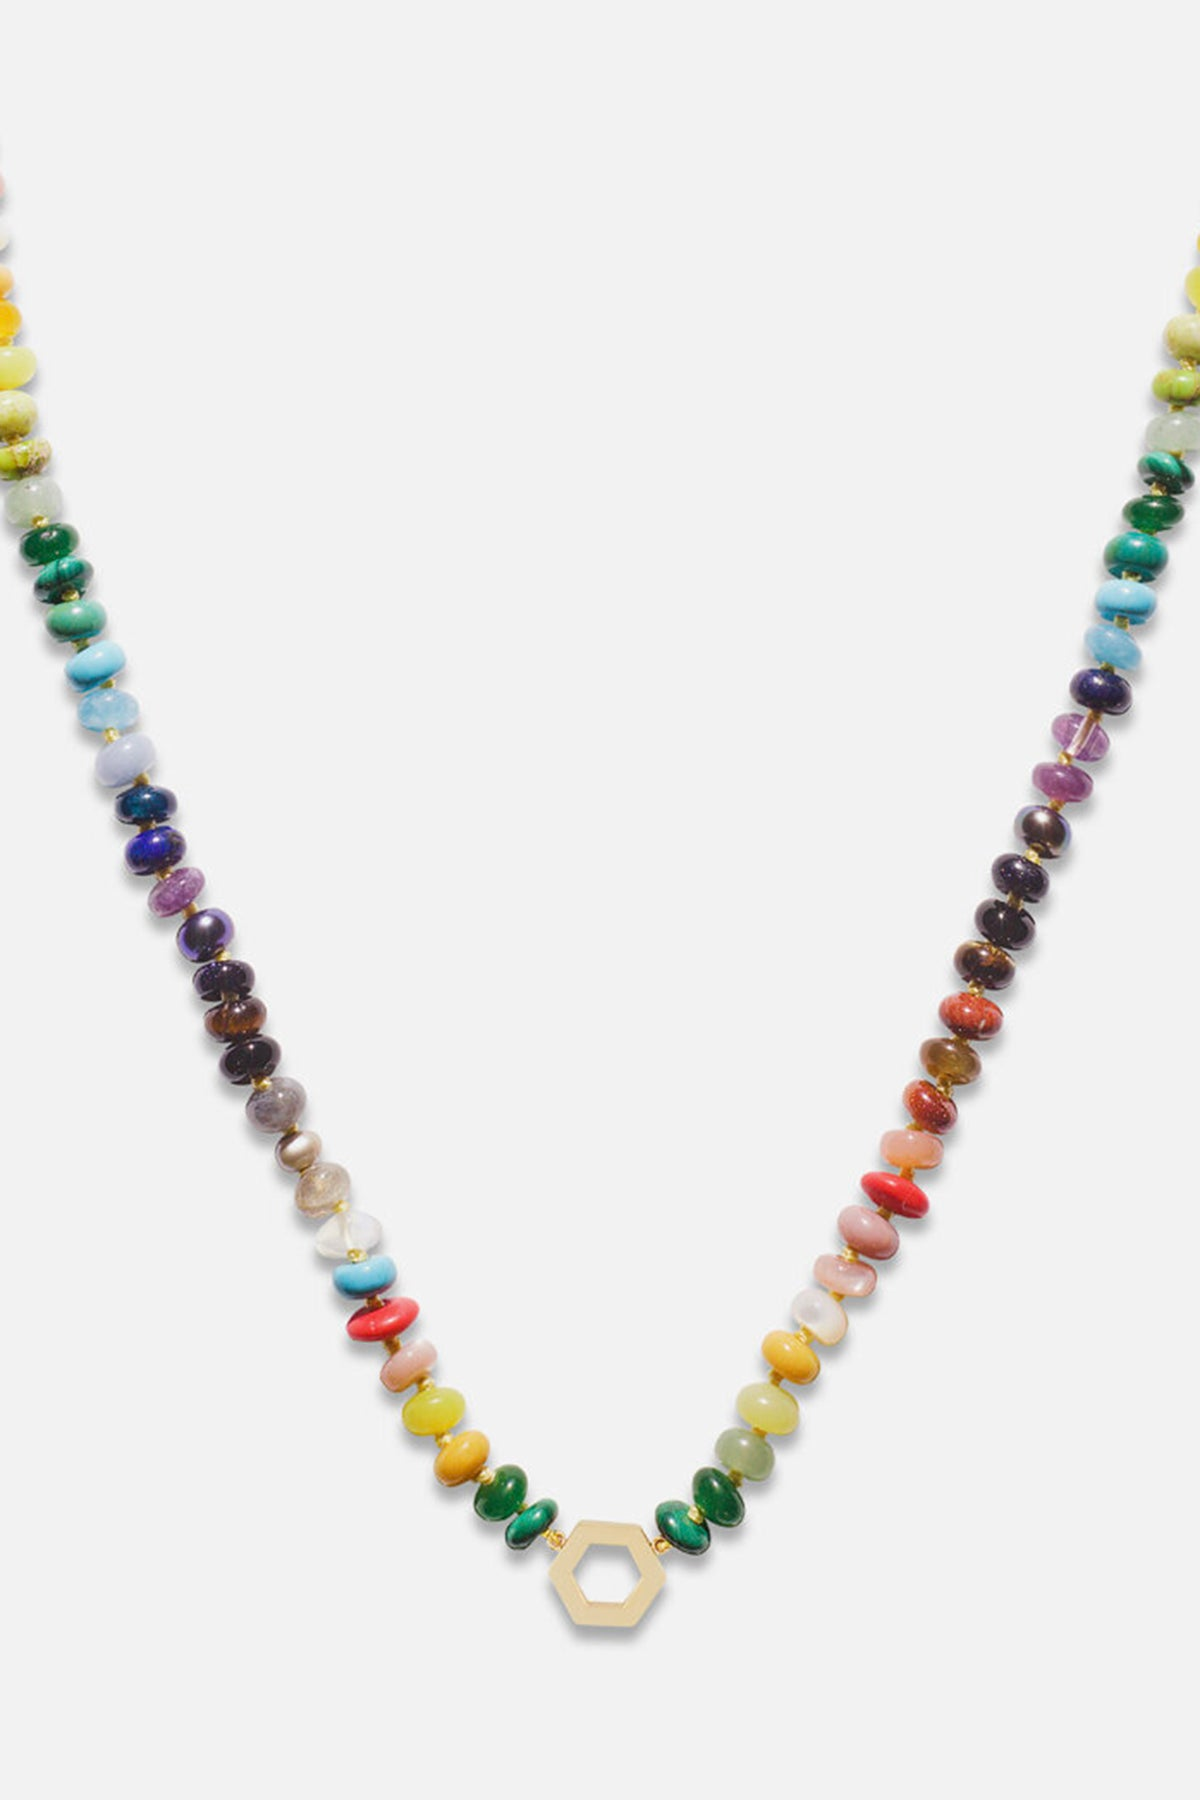 HARWELL GODFREY - Rainbow bead foundation necklace, 18""